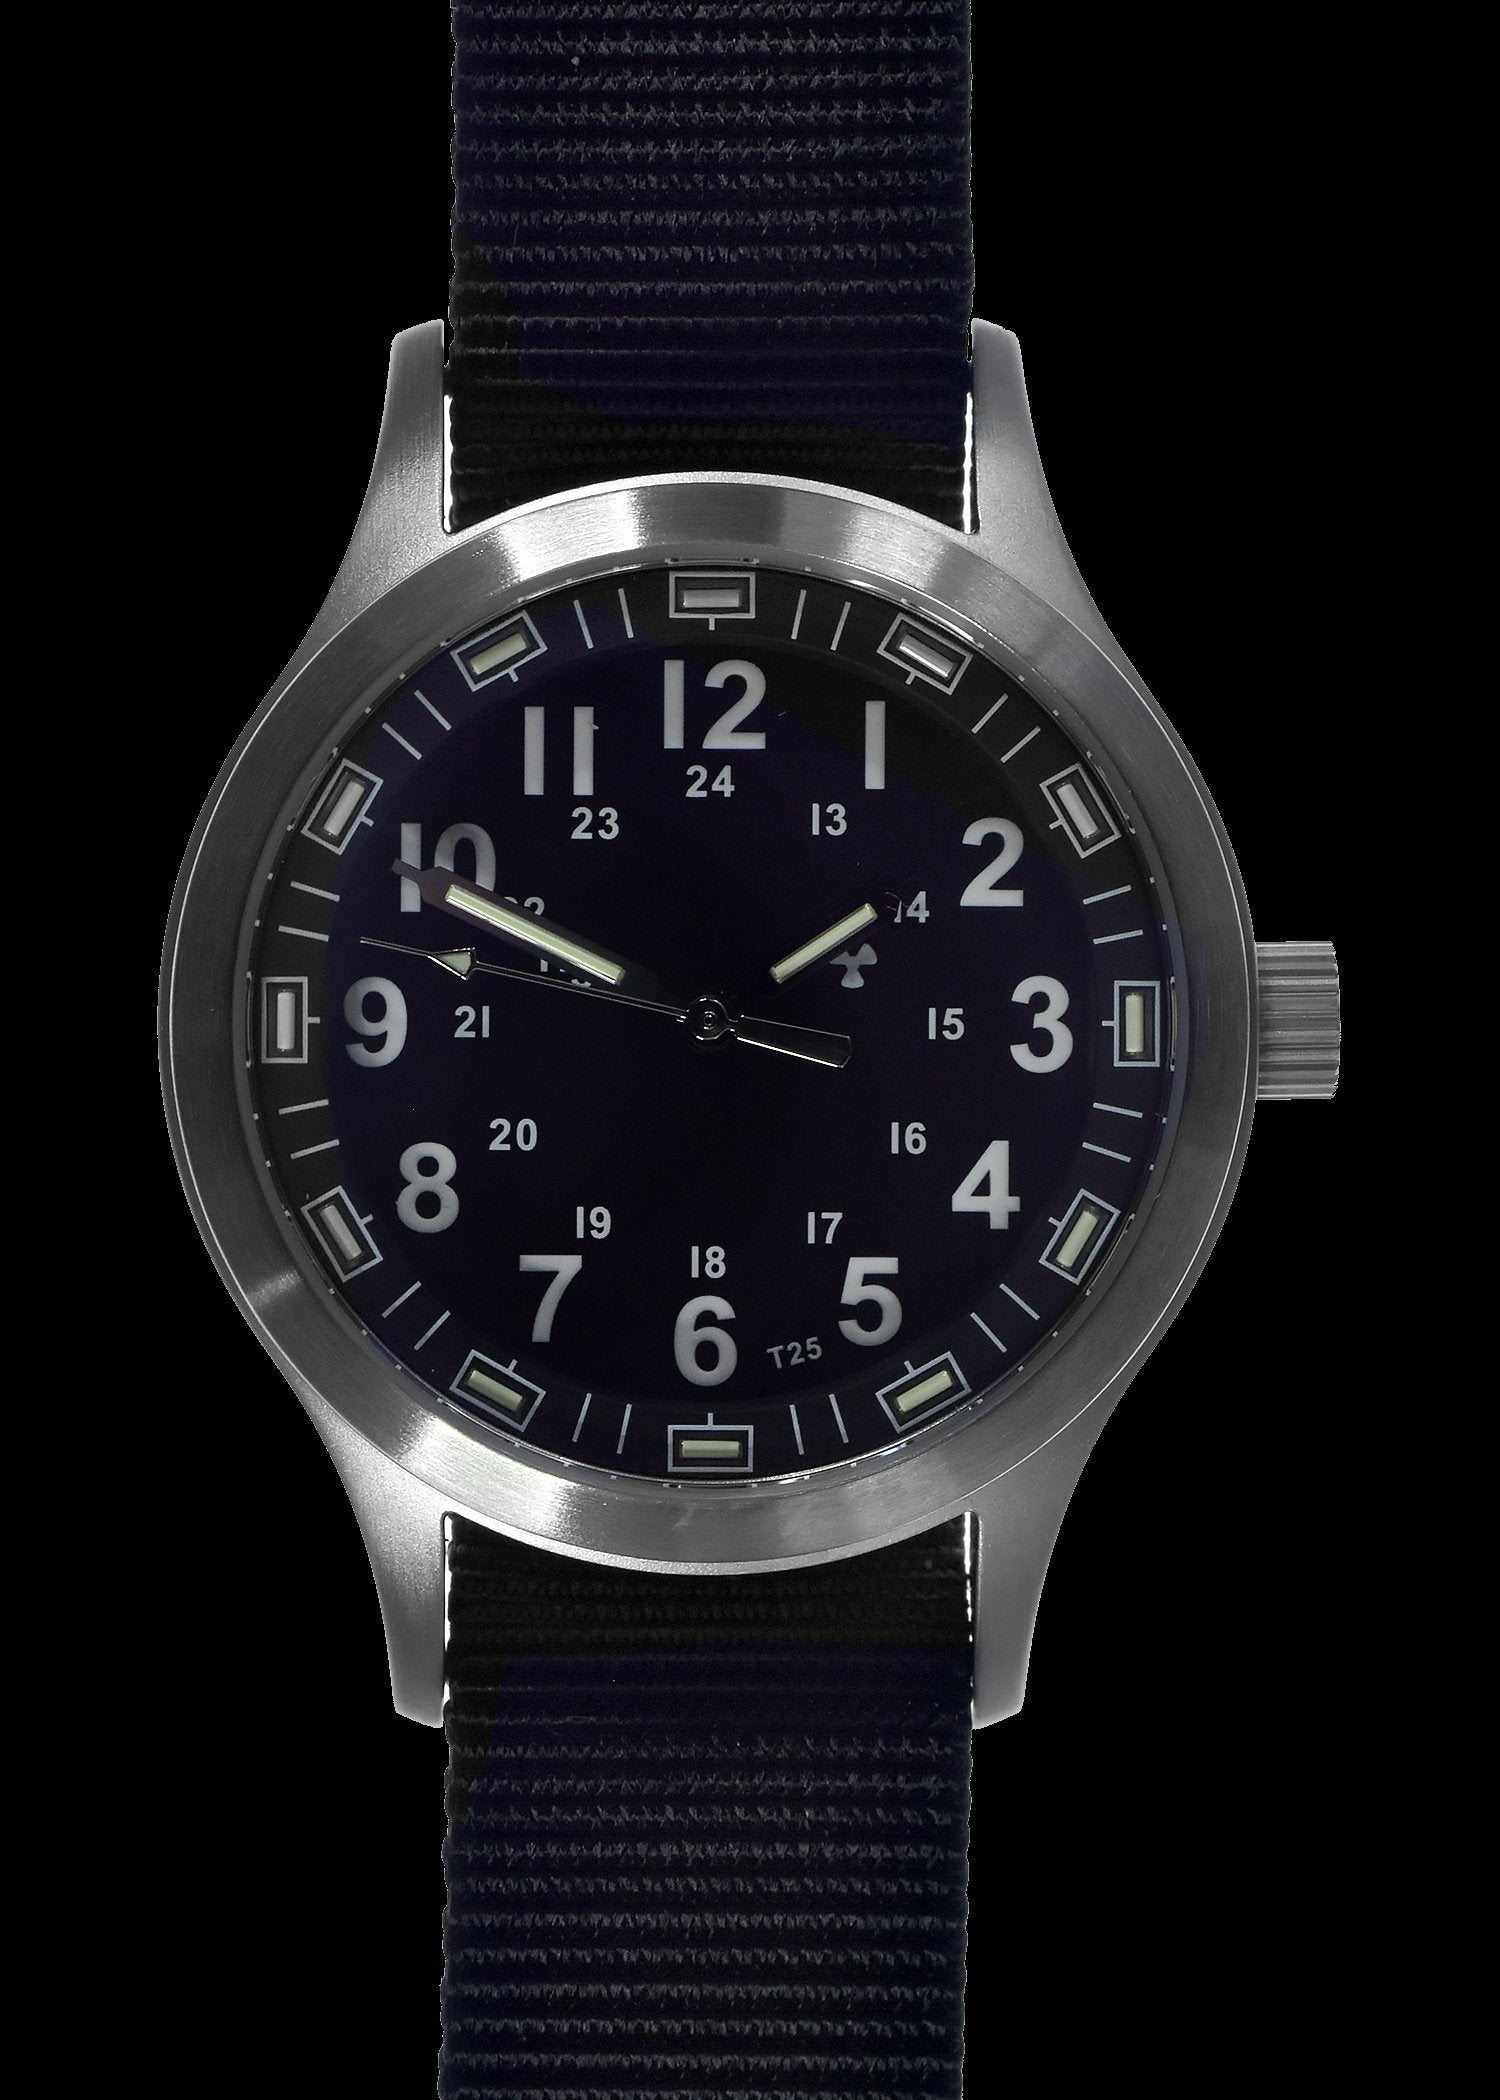 MKIII Stainless Steel  Model with Tritium GTLS Tubes